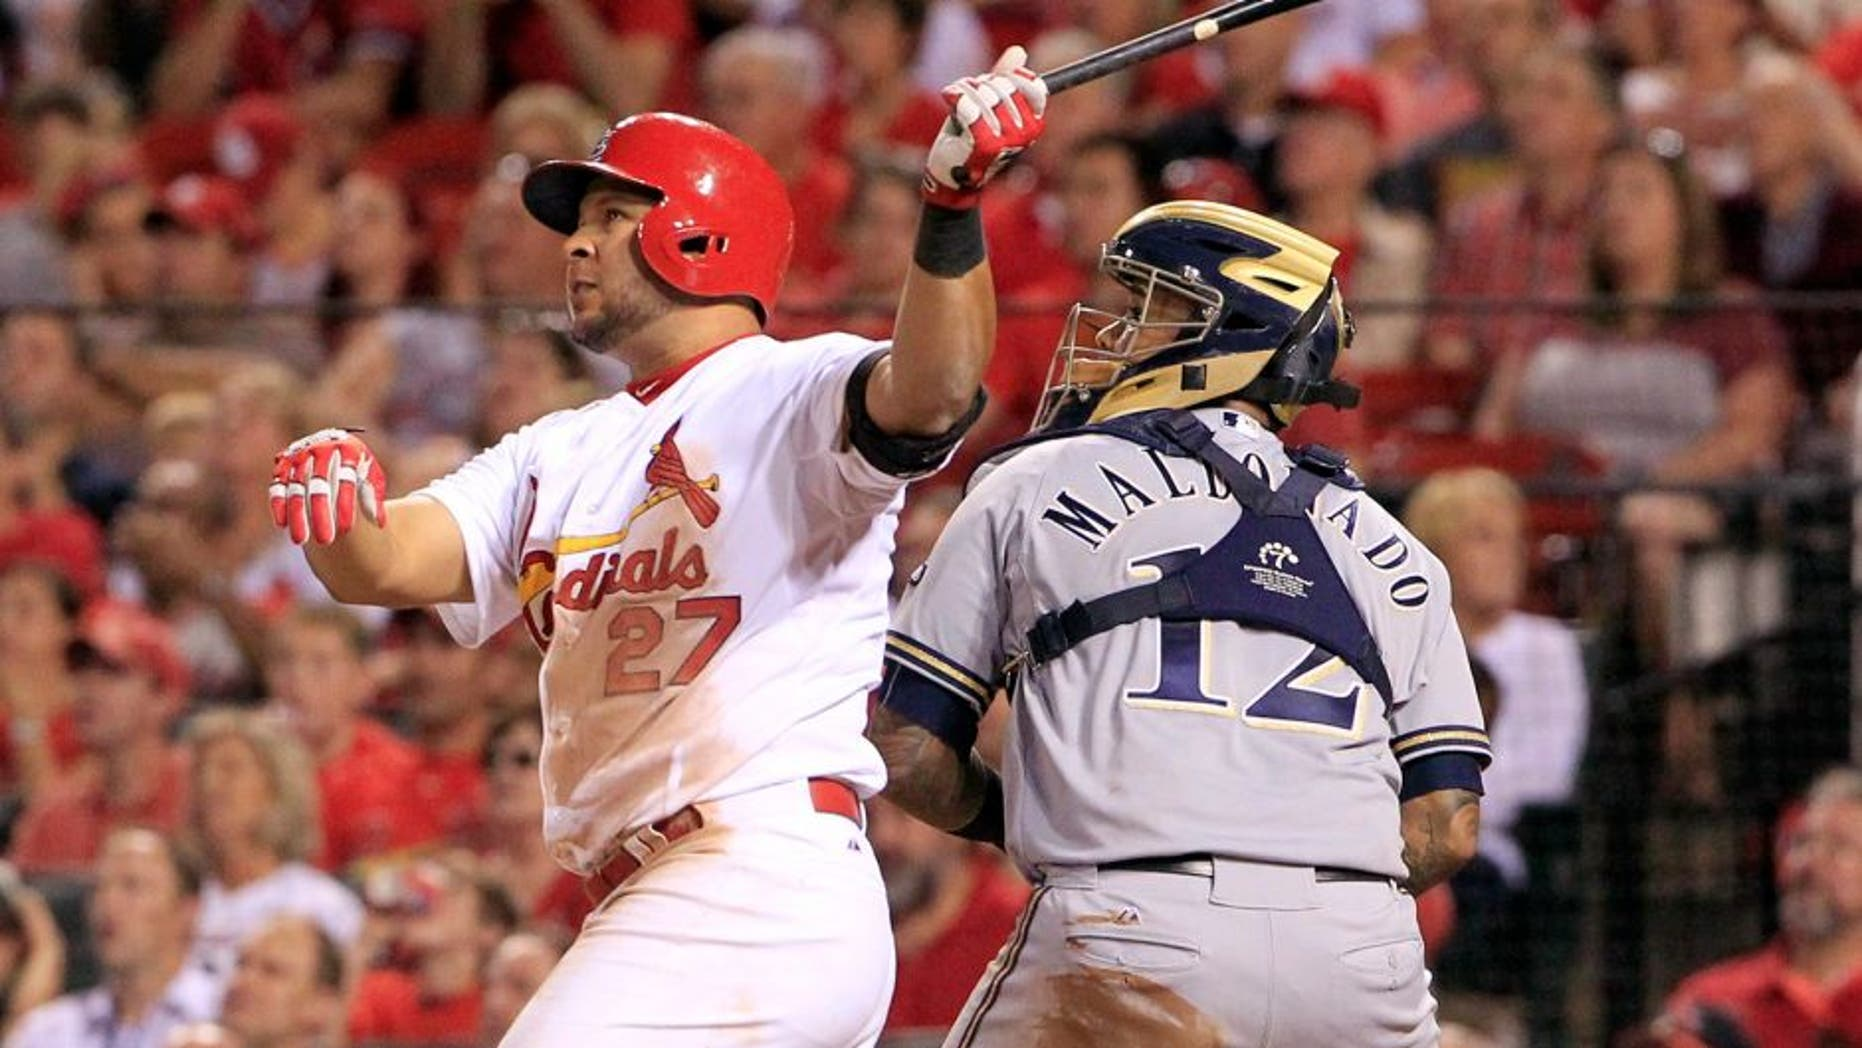 St. Louis Cardinals' Jhonny Peralta watches his three-run home run along side Milwaukee Brewers catcher Martin Maldonado during the fourth inning of a baseball game on Thursday, Sept. 24, 2015, in St. Louis. (AP Photo/Jeff Roberson)